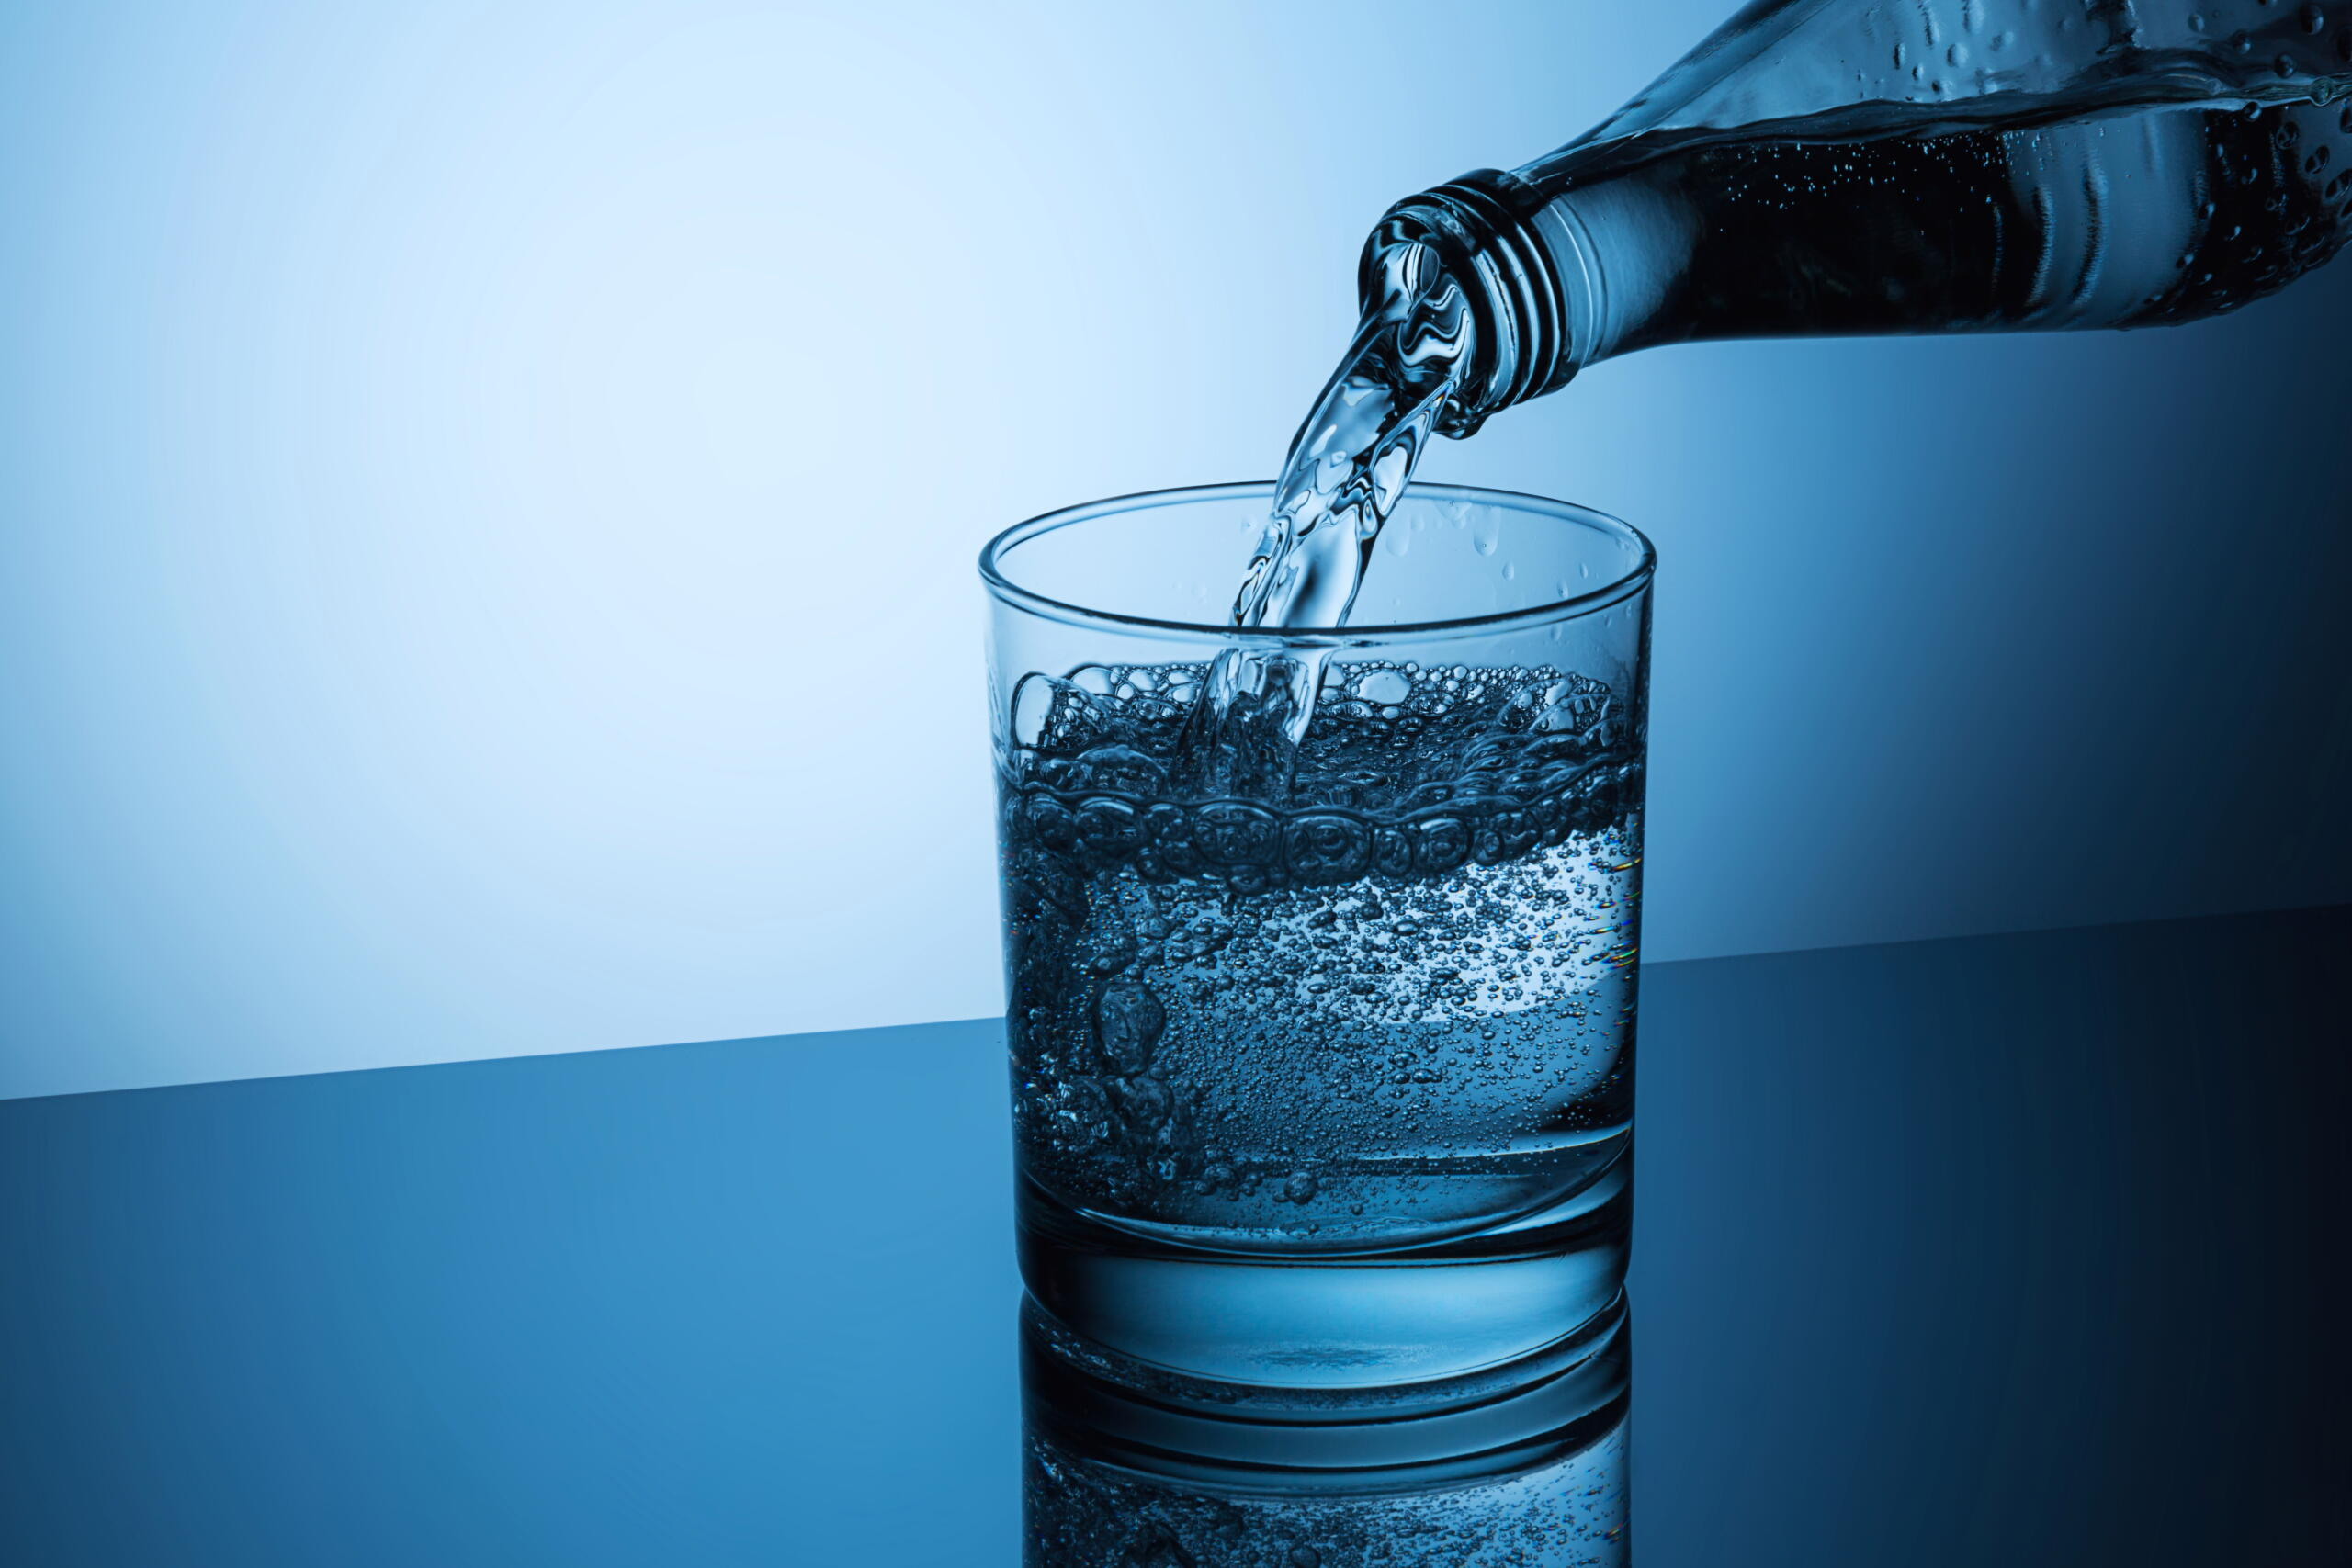 Sparkling water added fizzy and bubbly feels while consuming, does not have any strong advantages and disadvantages